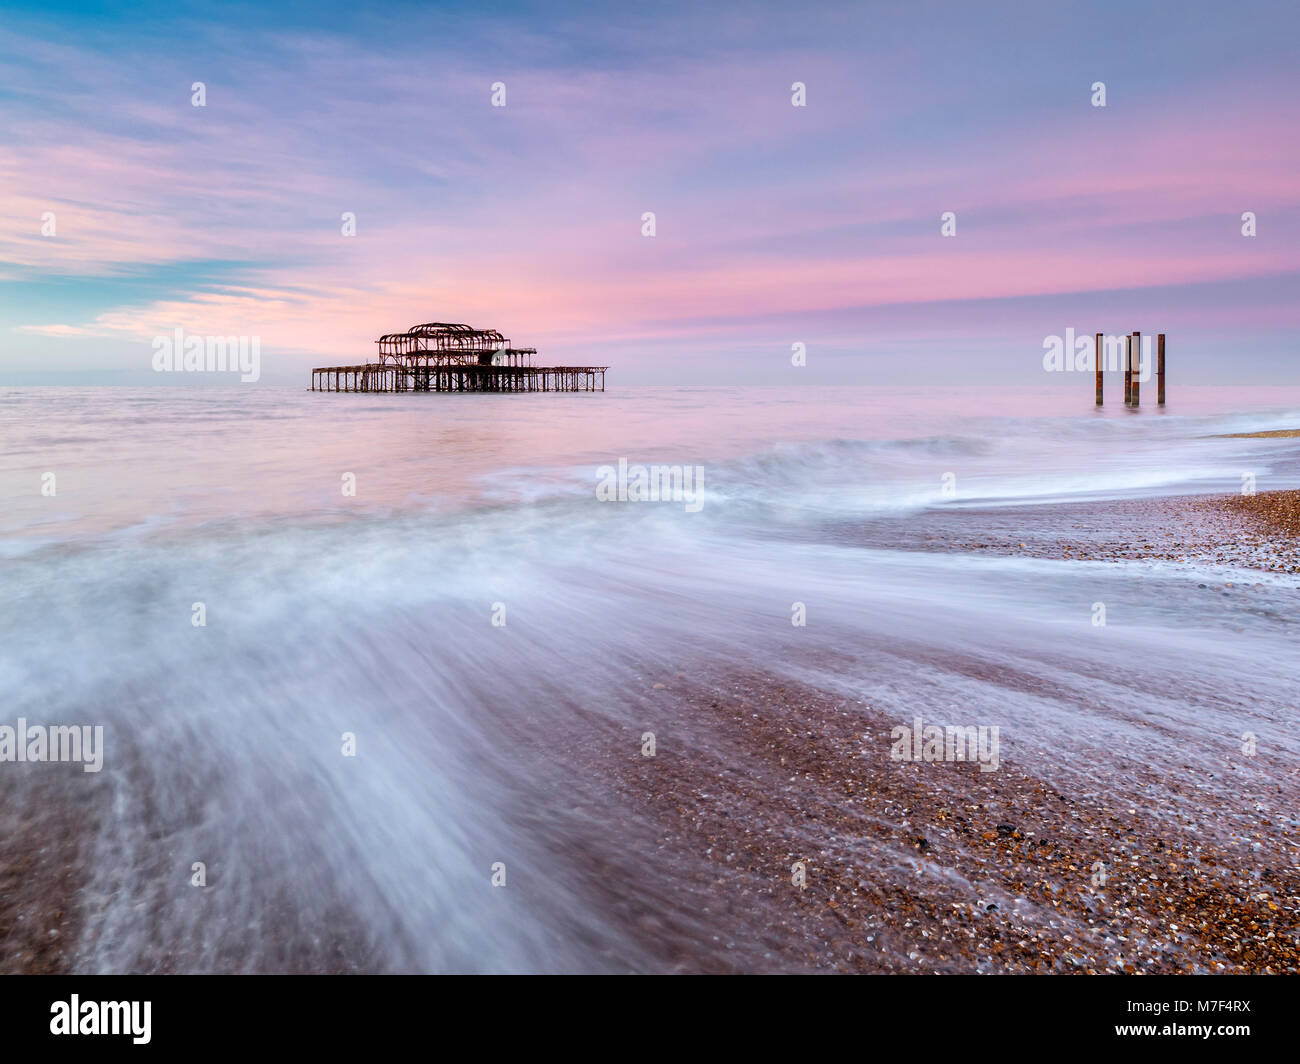 Pink sky over the old west pier at sunrise. - Stock Image